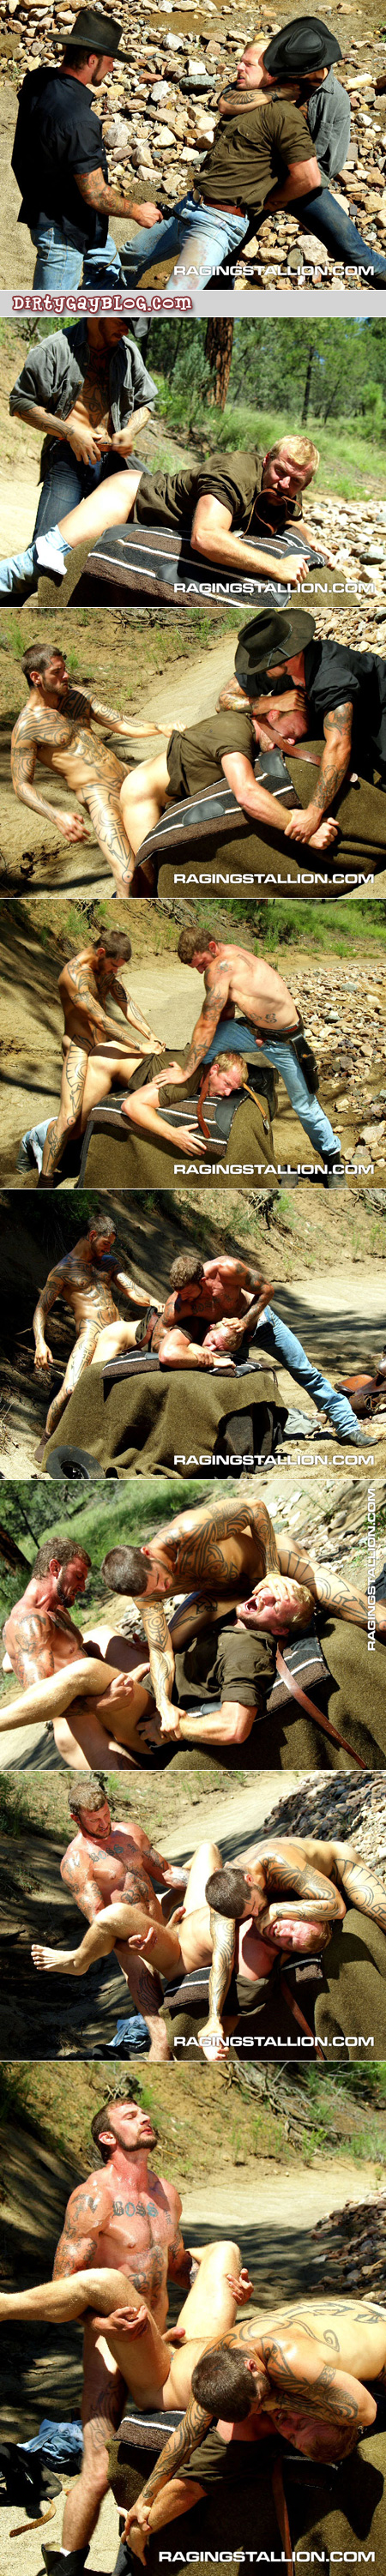 Two heavily tattooed male cowboys gang rape their male enemy.